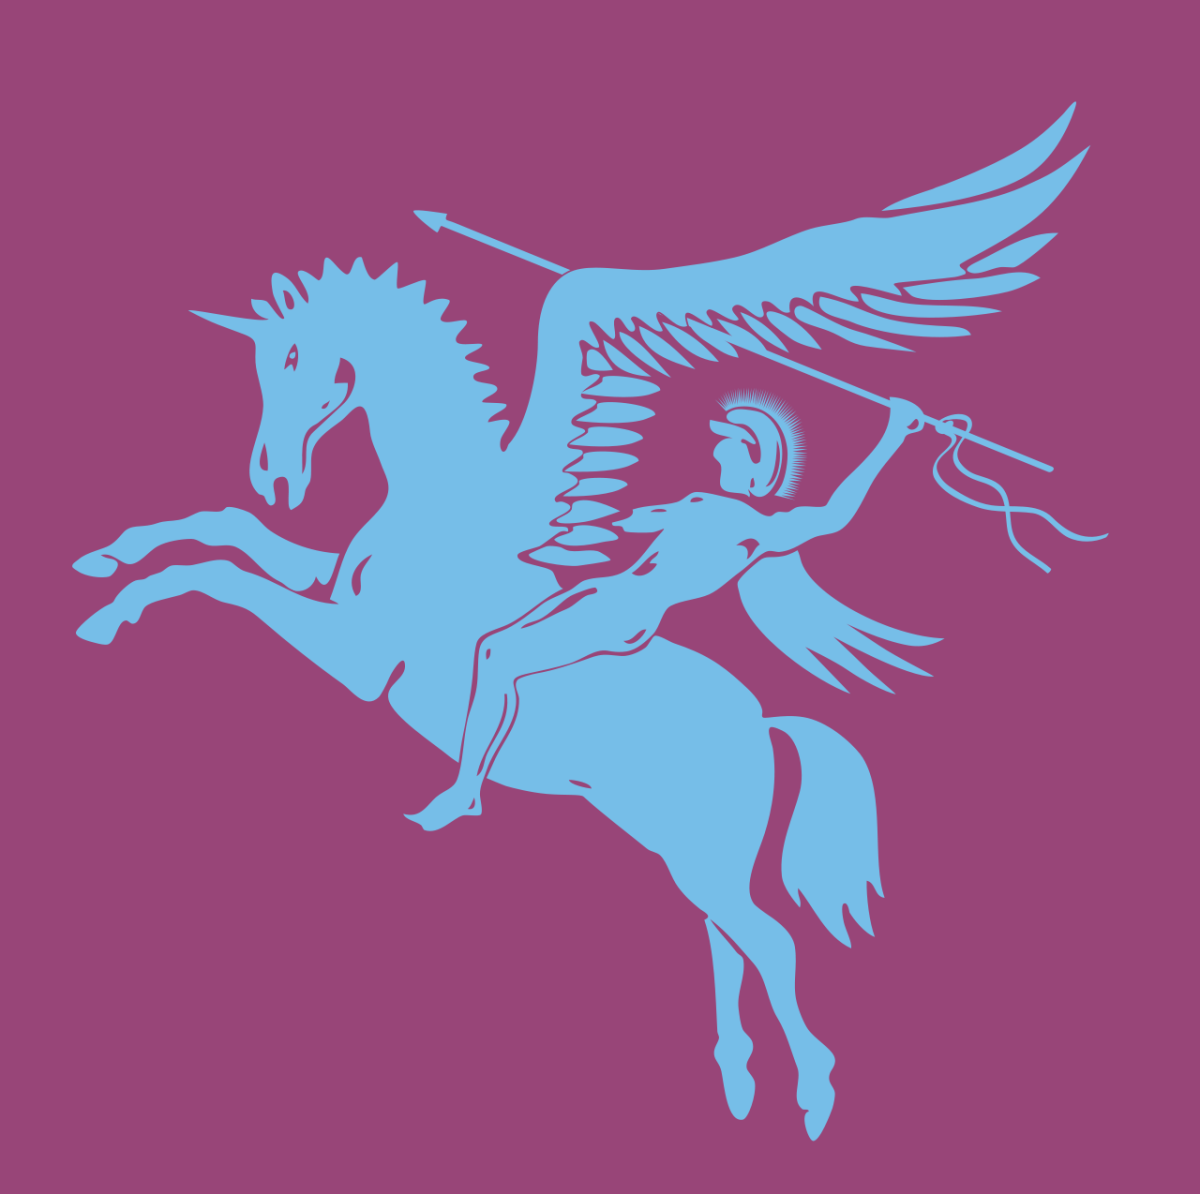 The symbol of the British Airborne Forces in World War II was Bellerophon, a Greek hero, riding Pegasus.